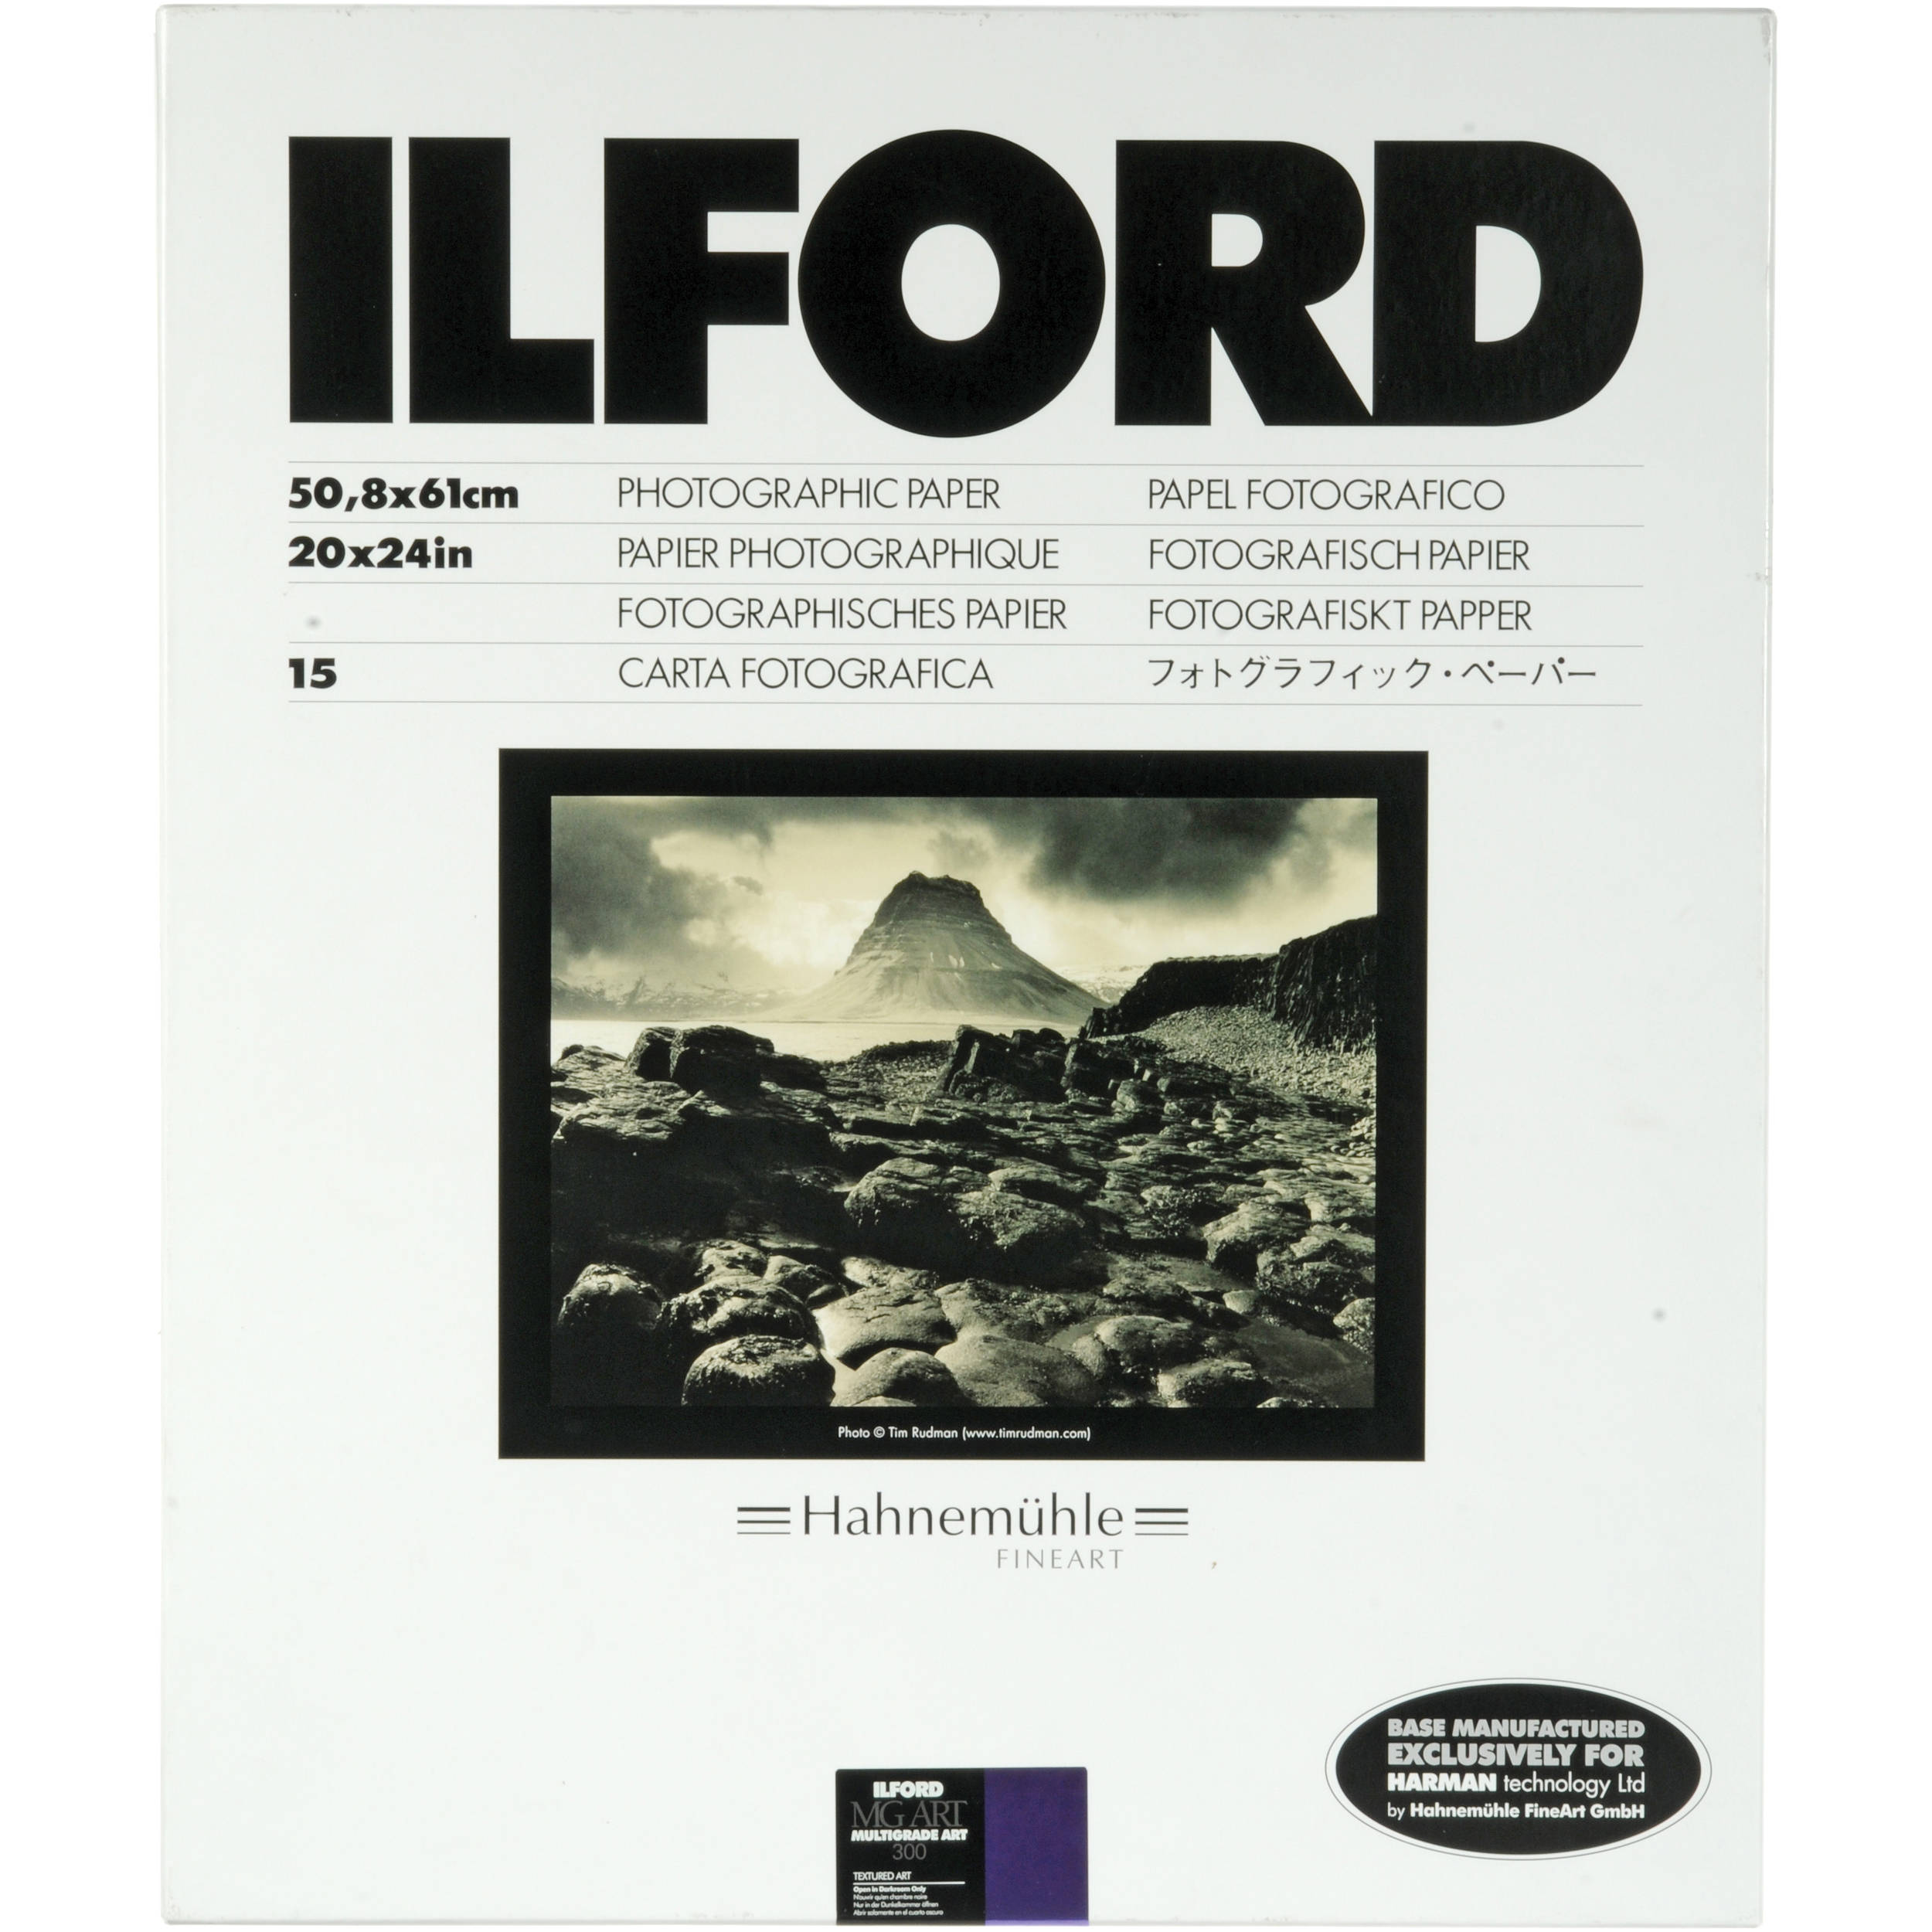 Photographic Papers from Ilford - EMSDIASUM